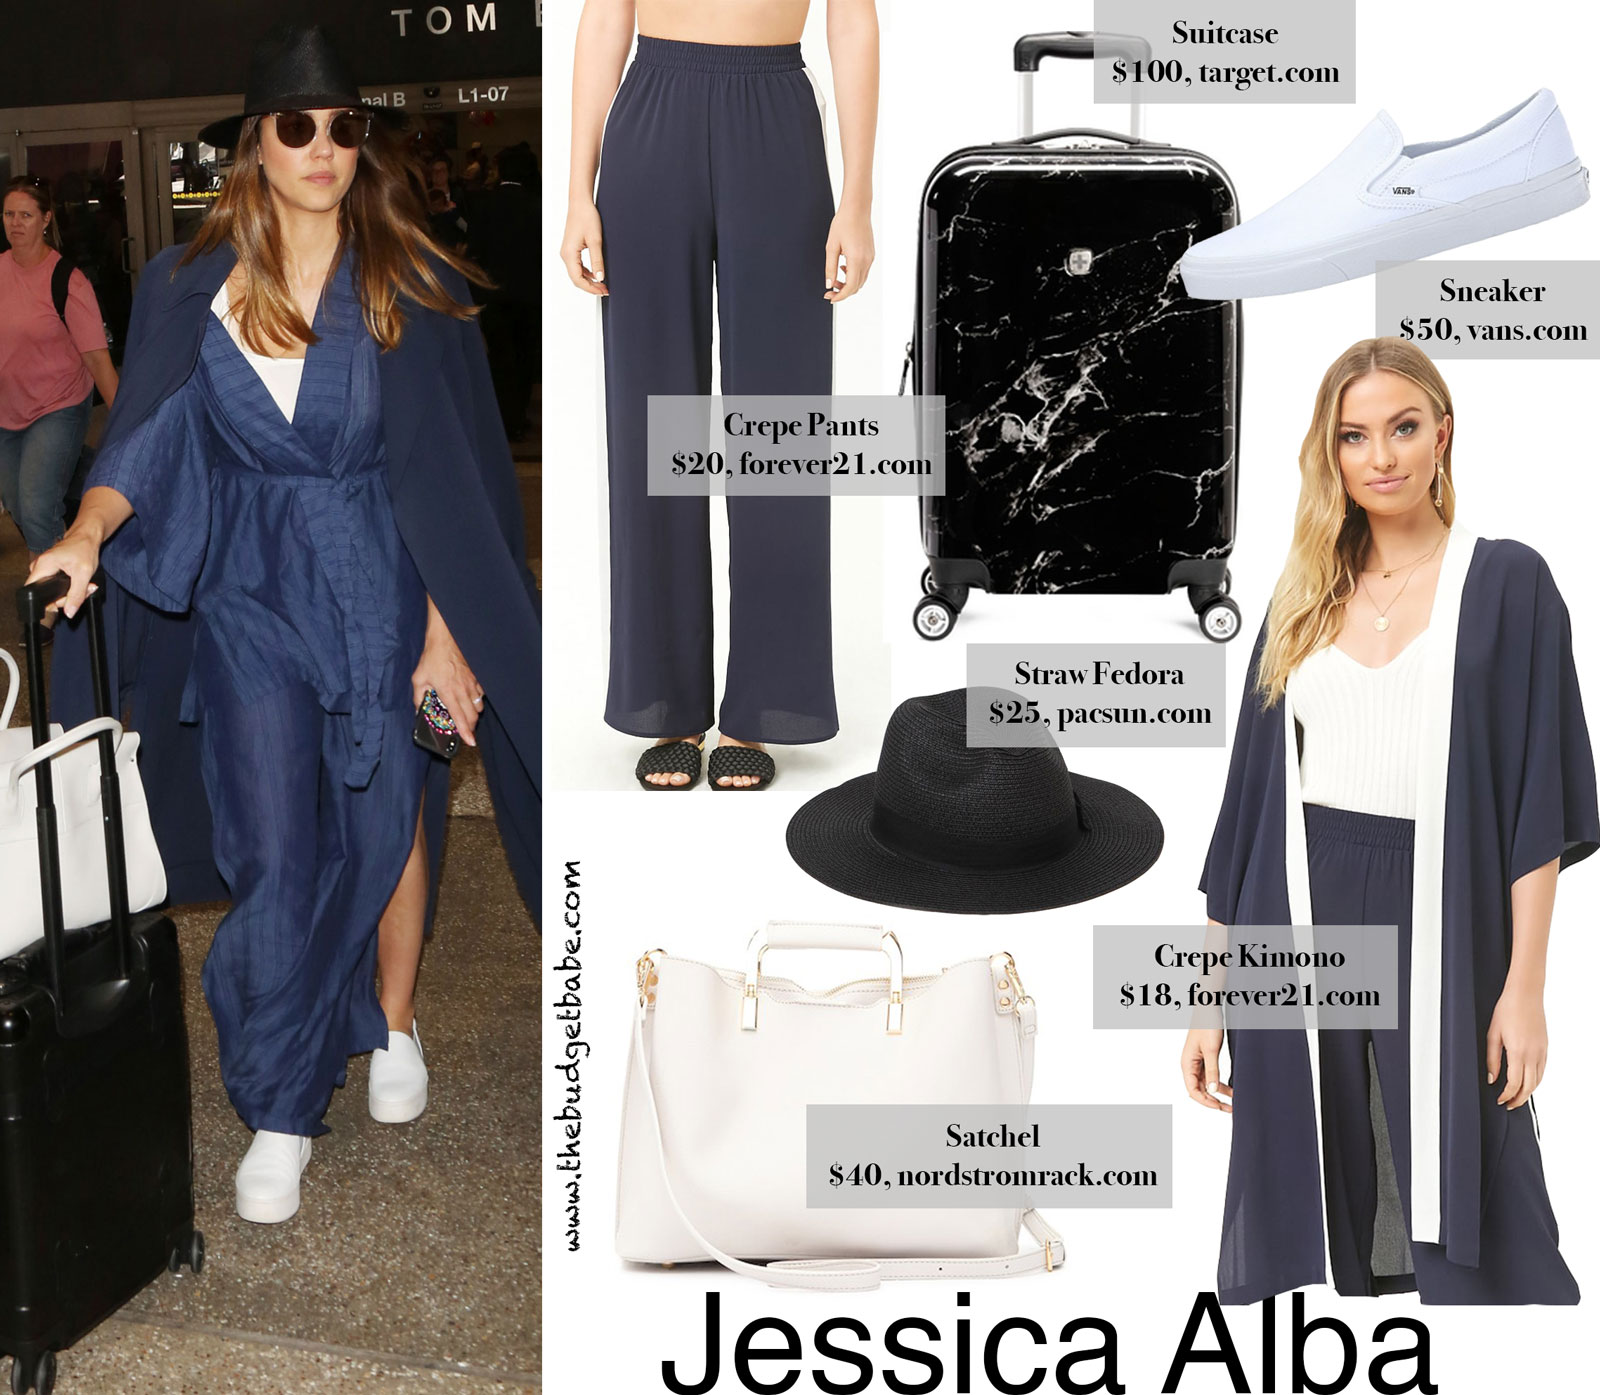 Jessica Alba Onia Wide Leg Pants and Kimono Look for Less